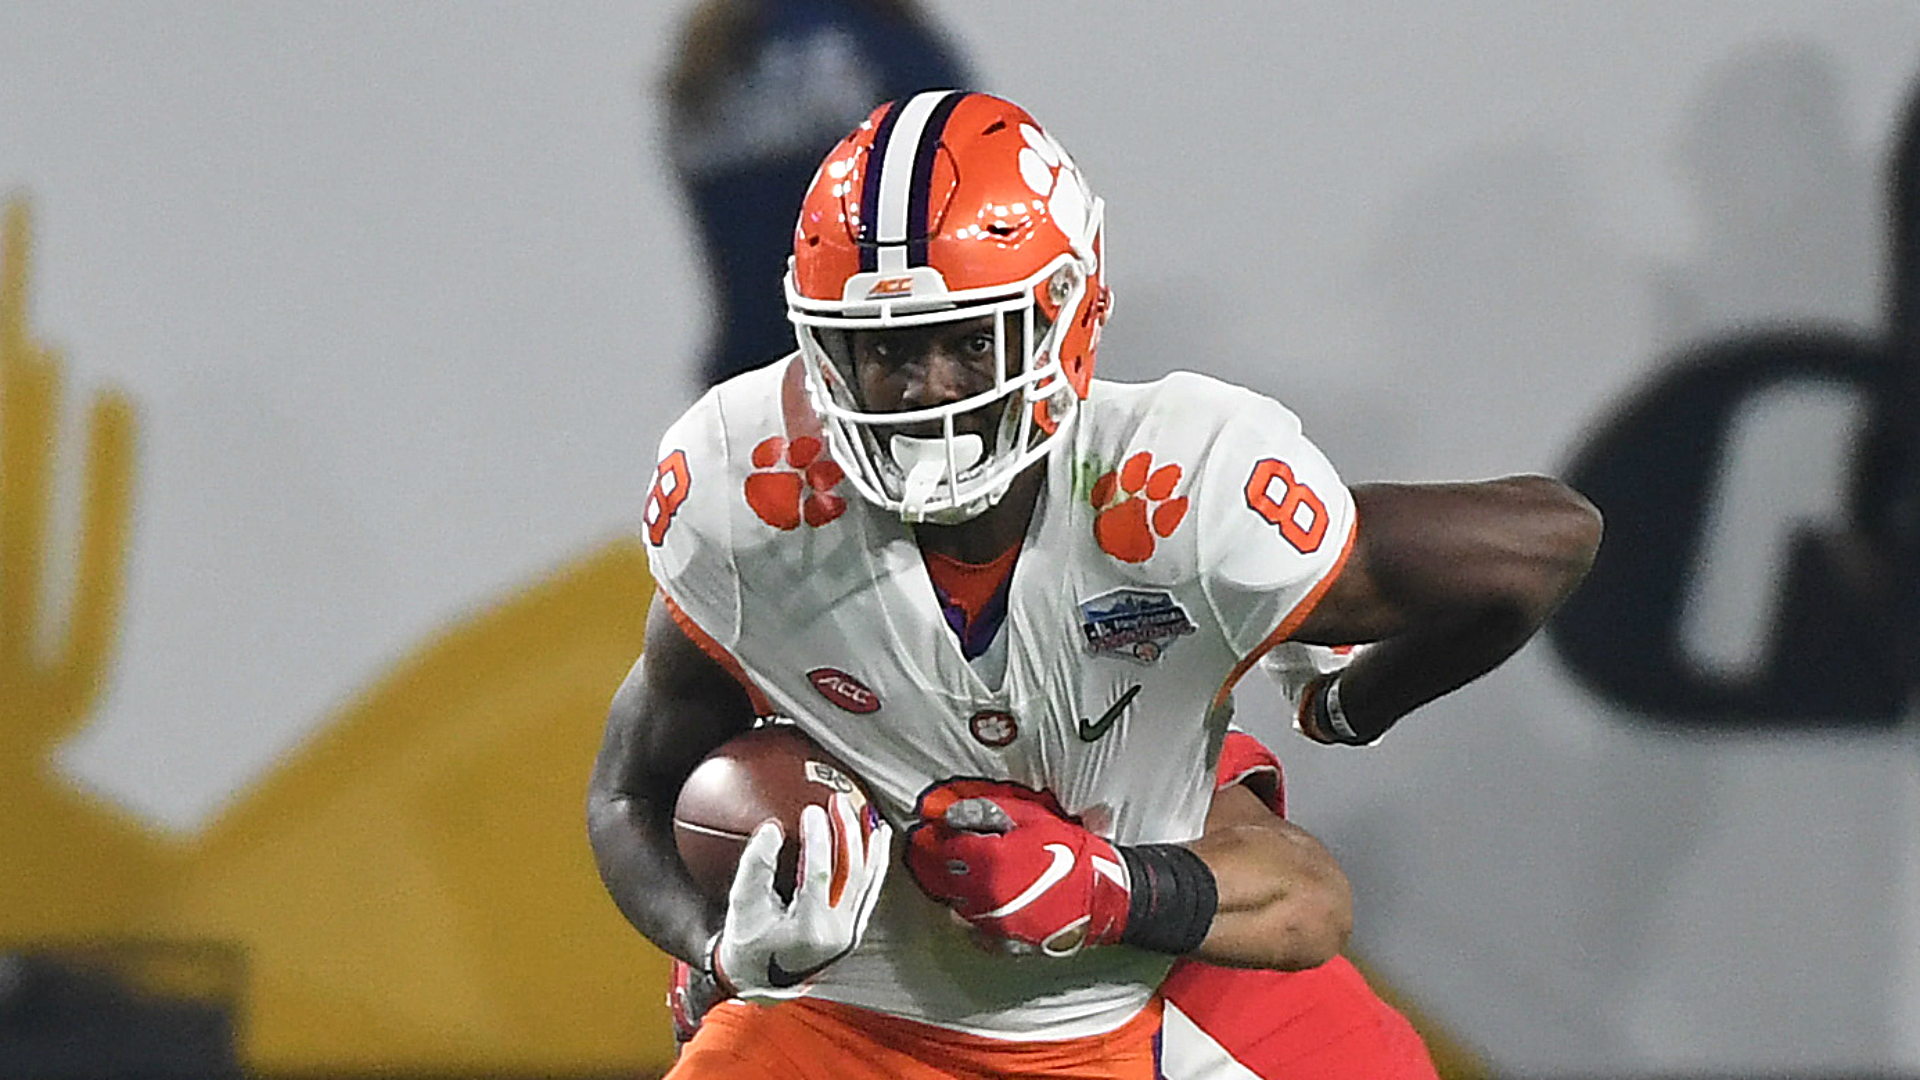 Clemson's Justyn Ross cleared to play in 2021 after missing the previous season